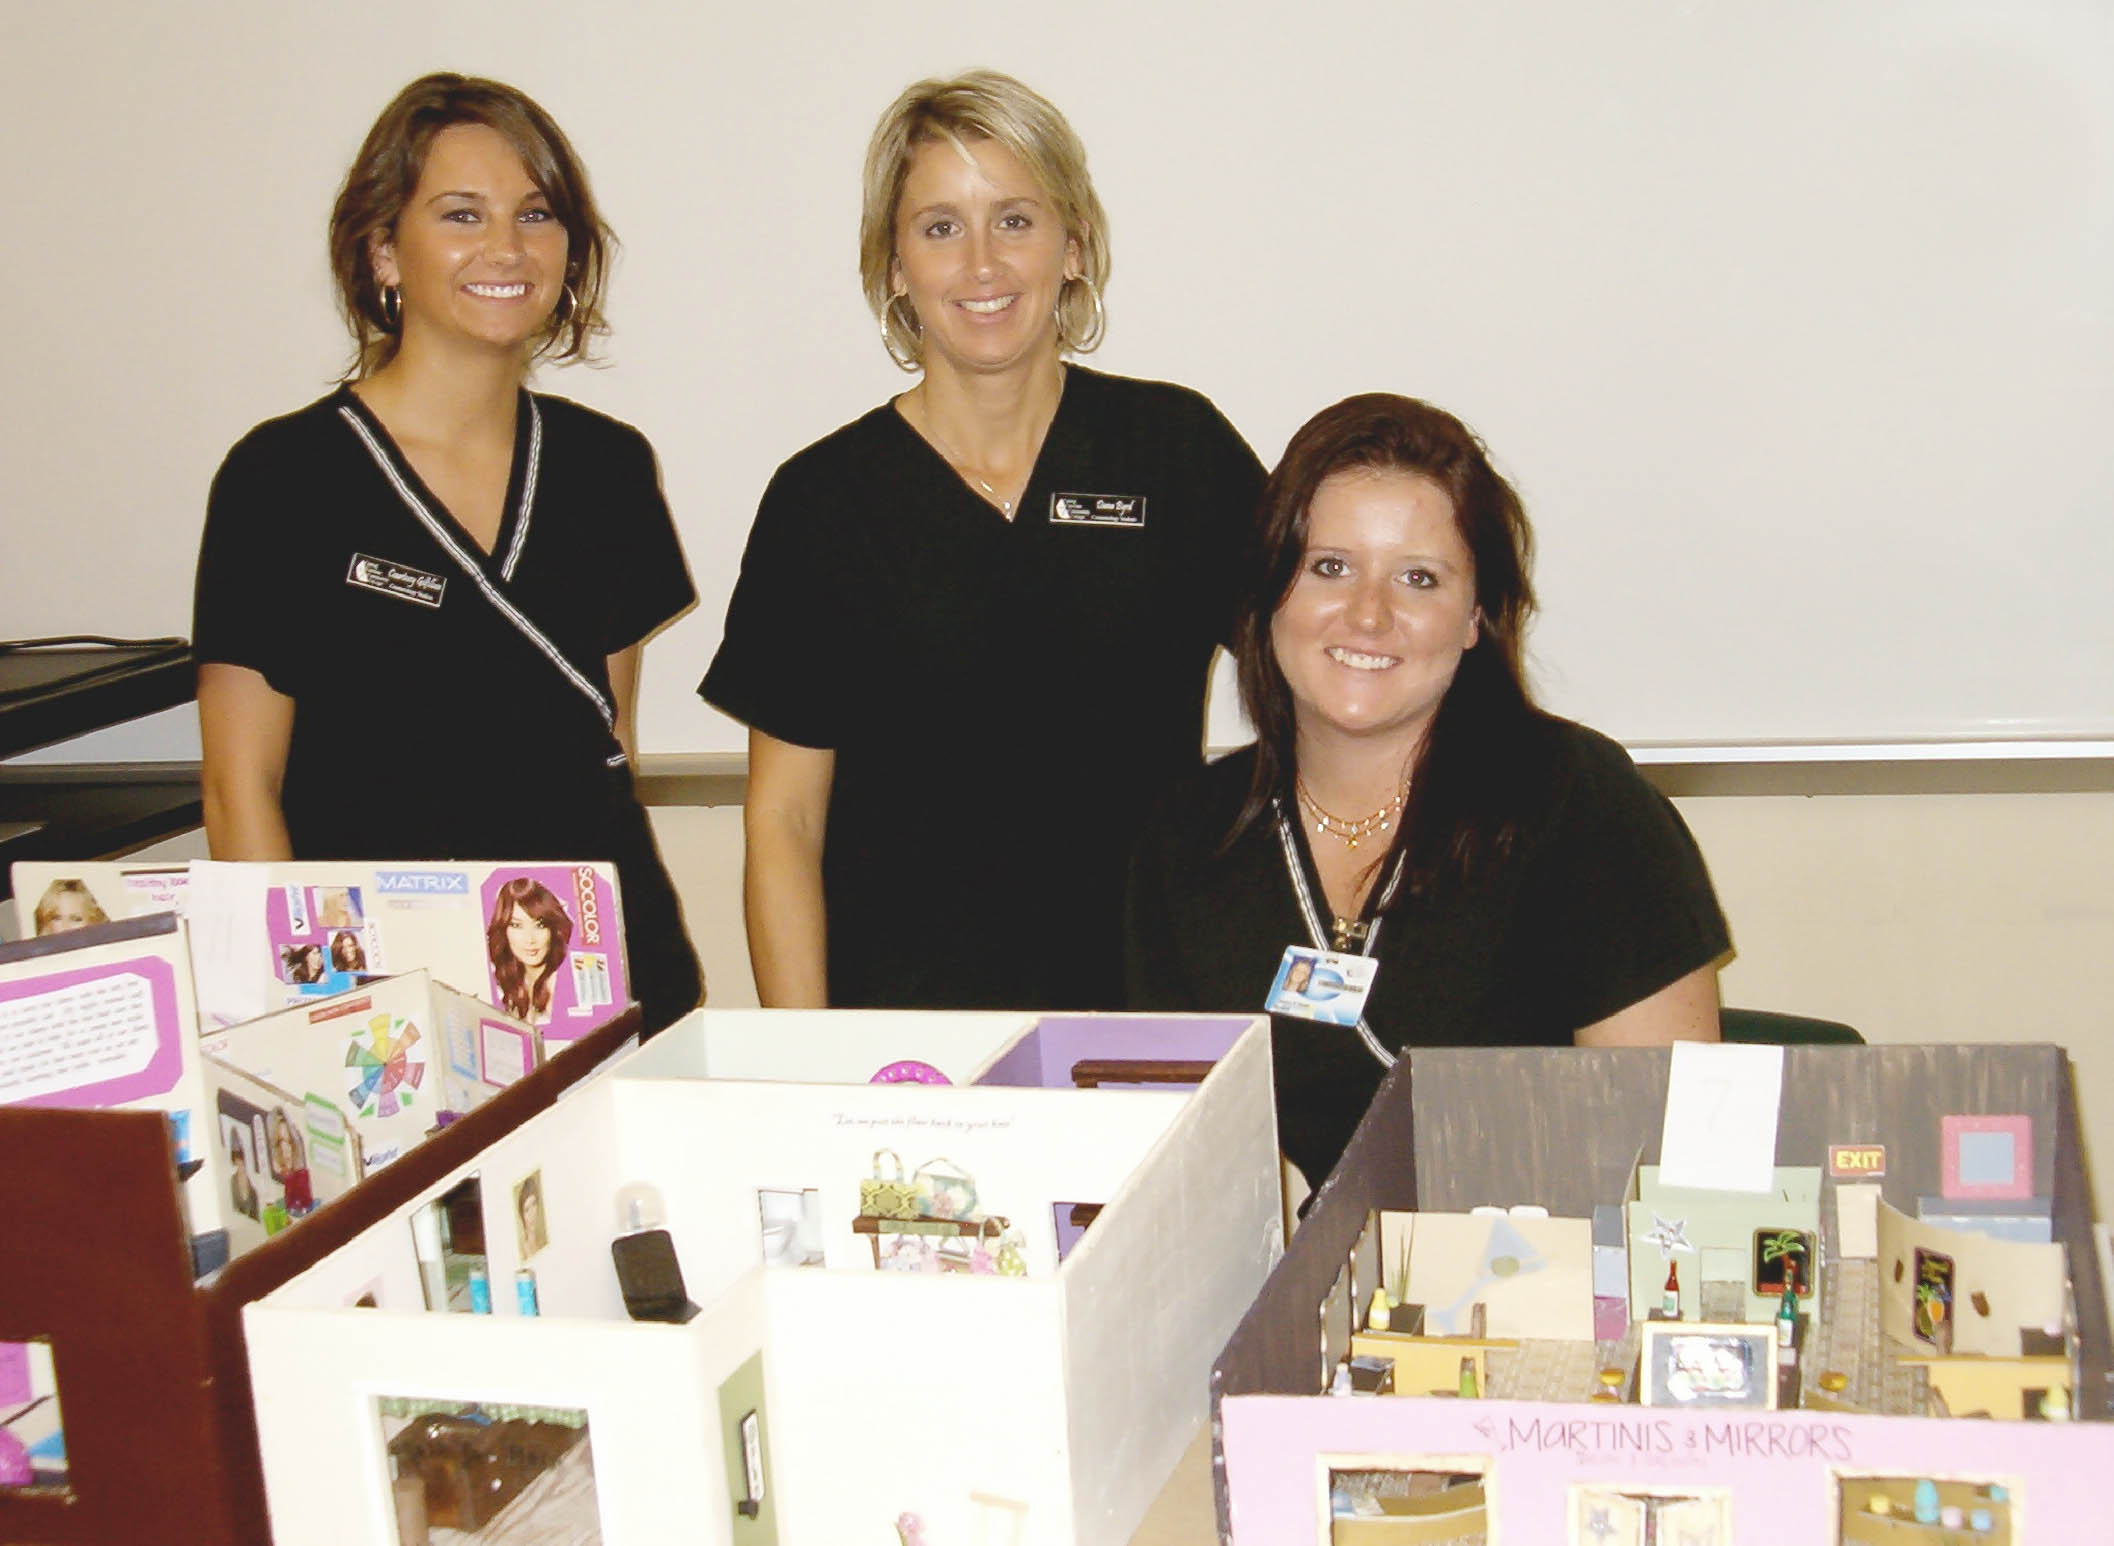 Read the full story, Cosmetology students design winning salons